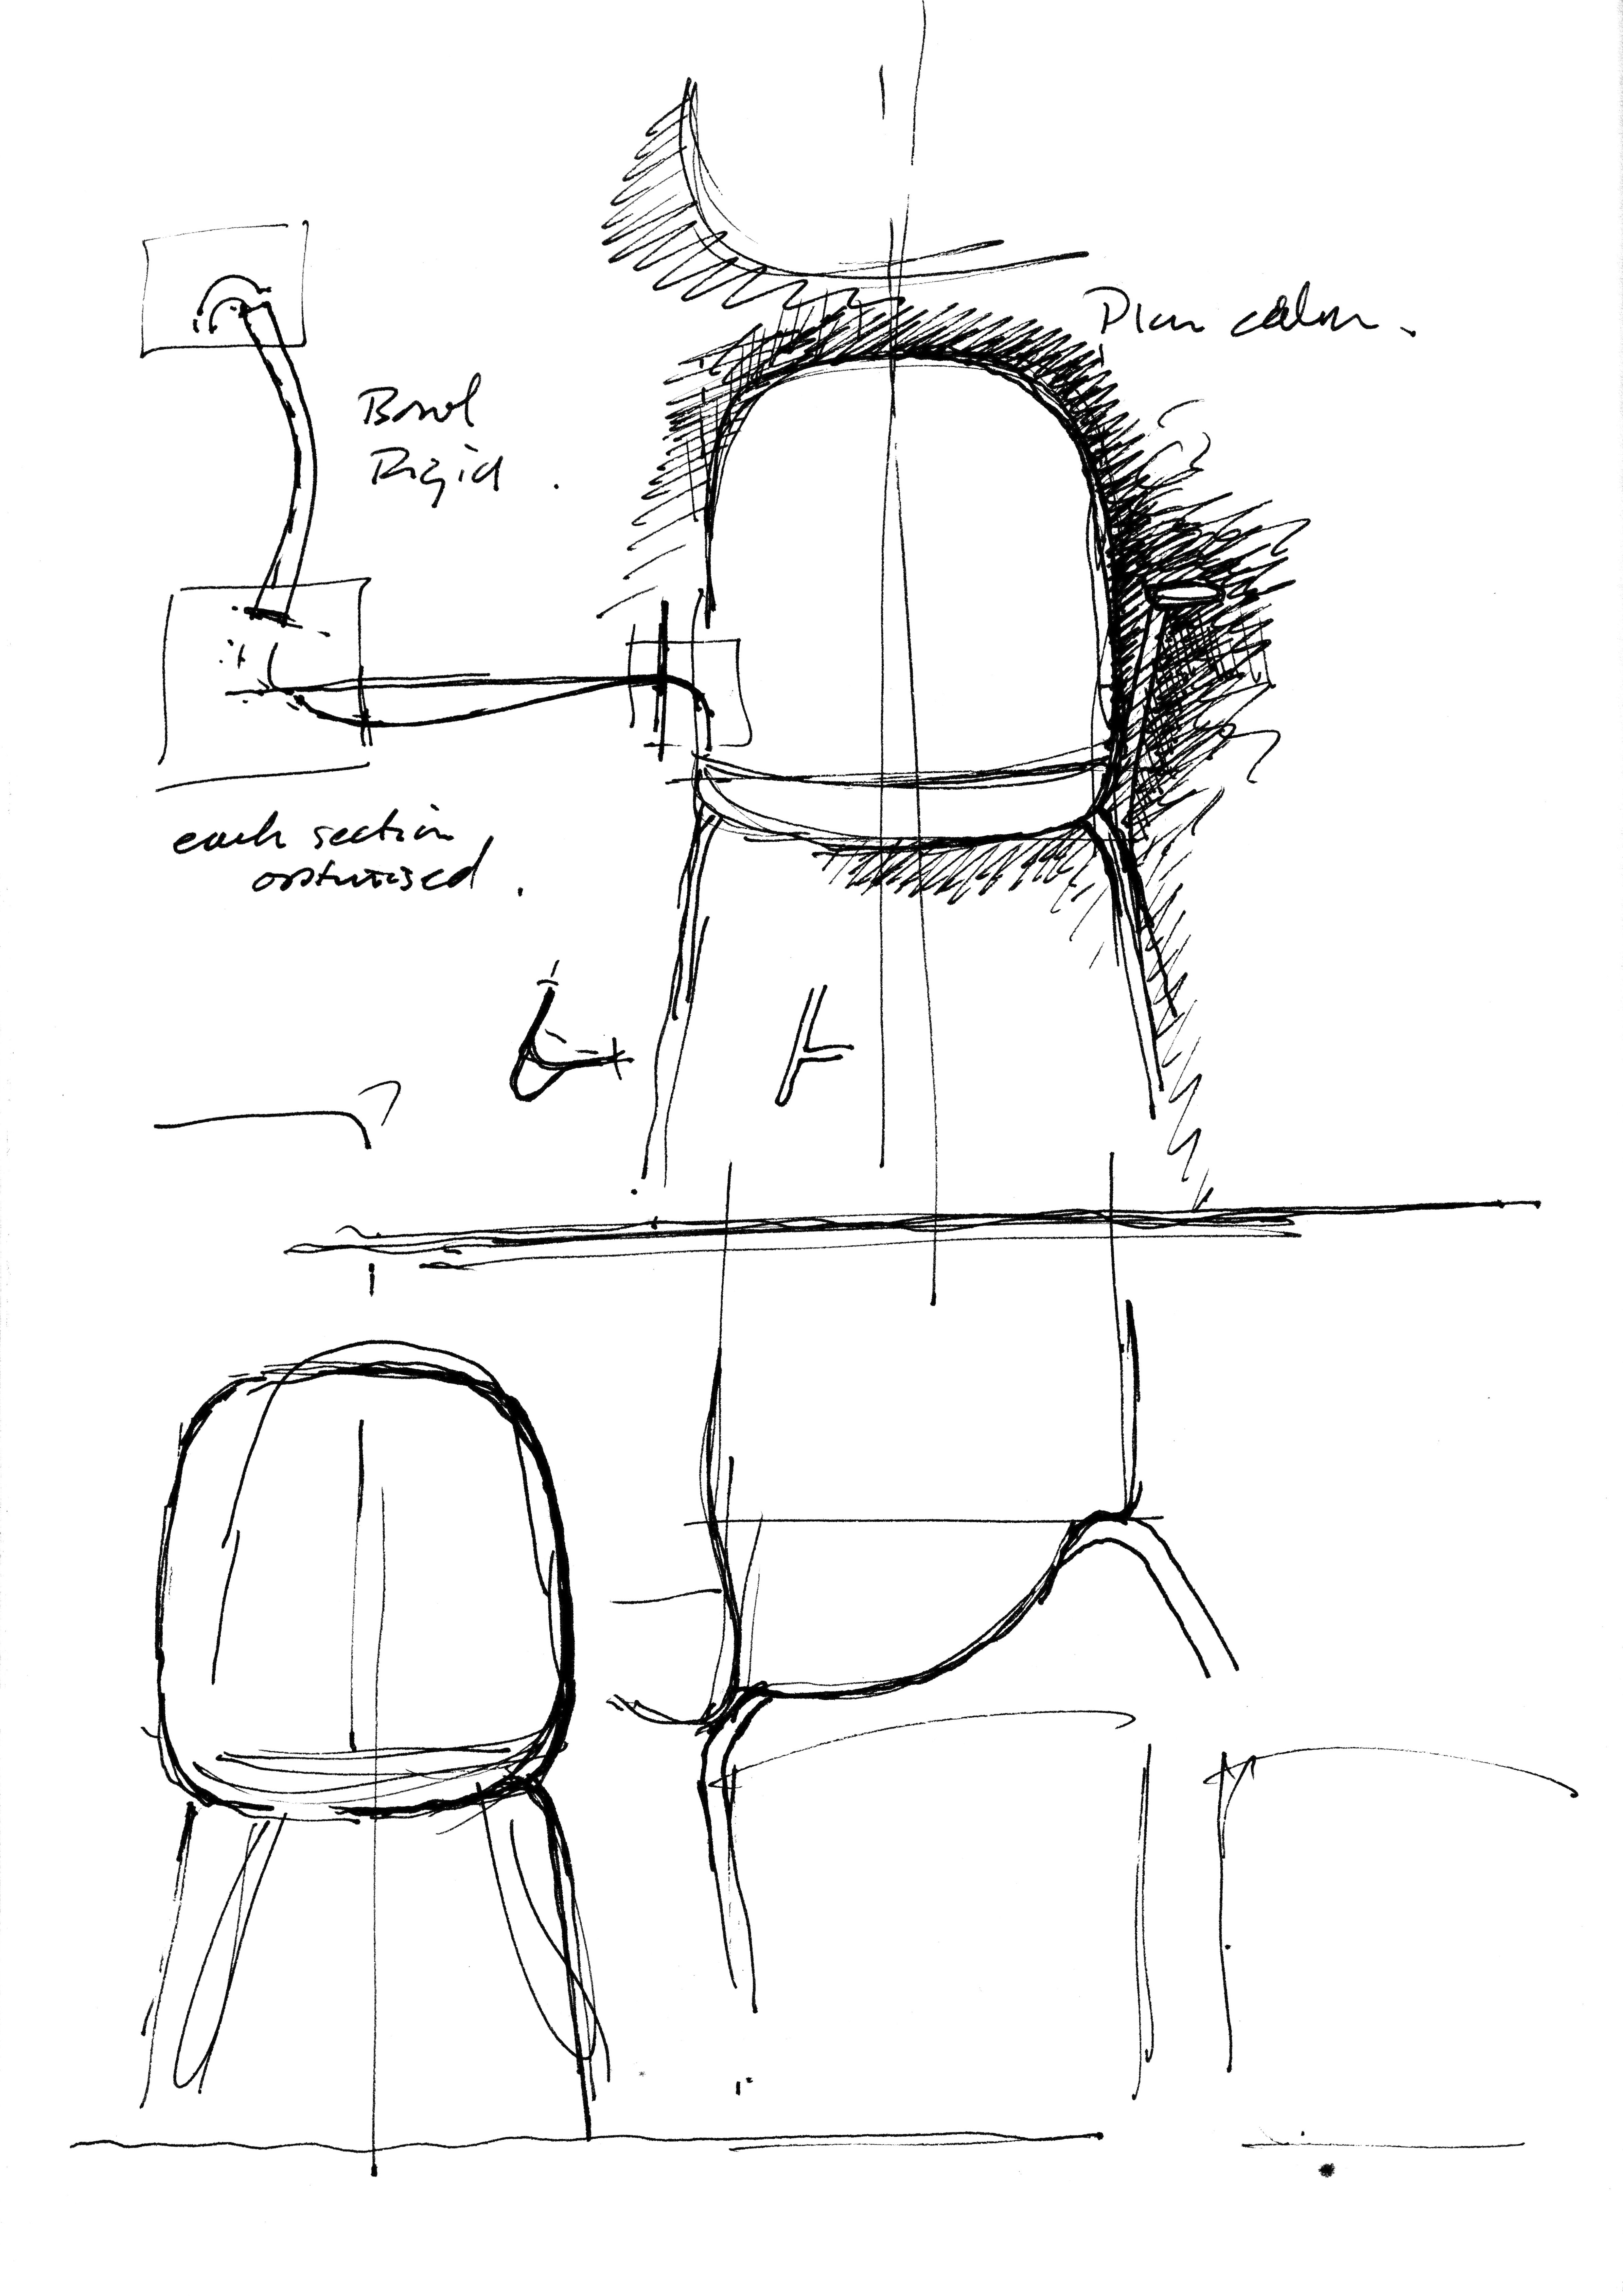 Chair design drawing - Furniture Sketch Of The Chair Sixe Designed By Pearsonlloyd Chair Designthe Chairsketchsketchingpresentationdesignersdrawings